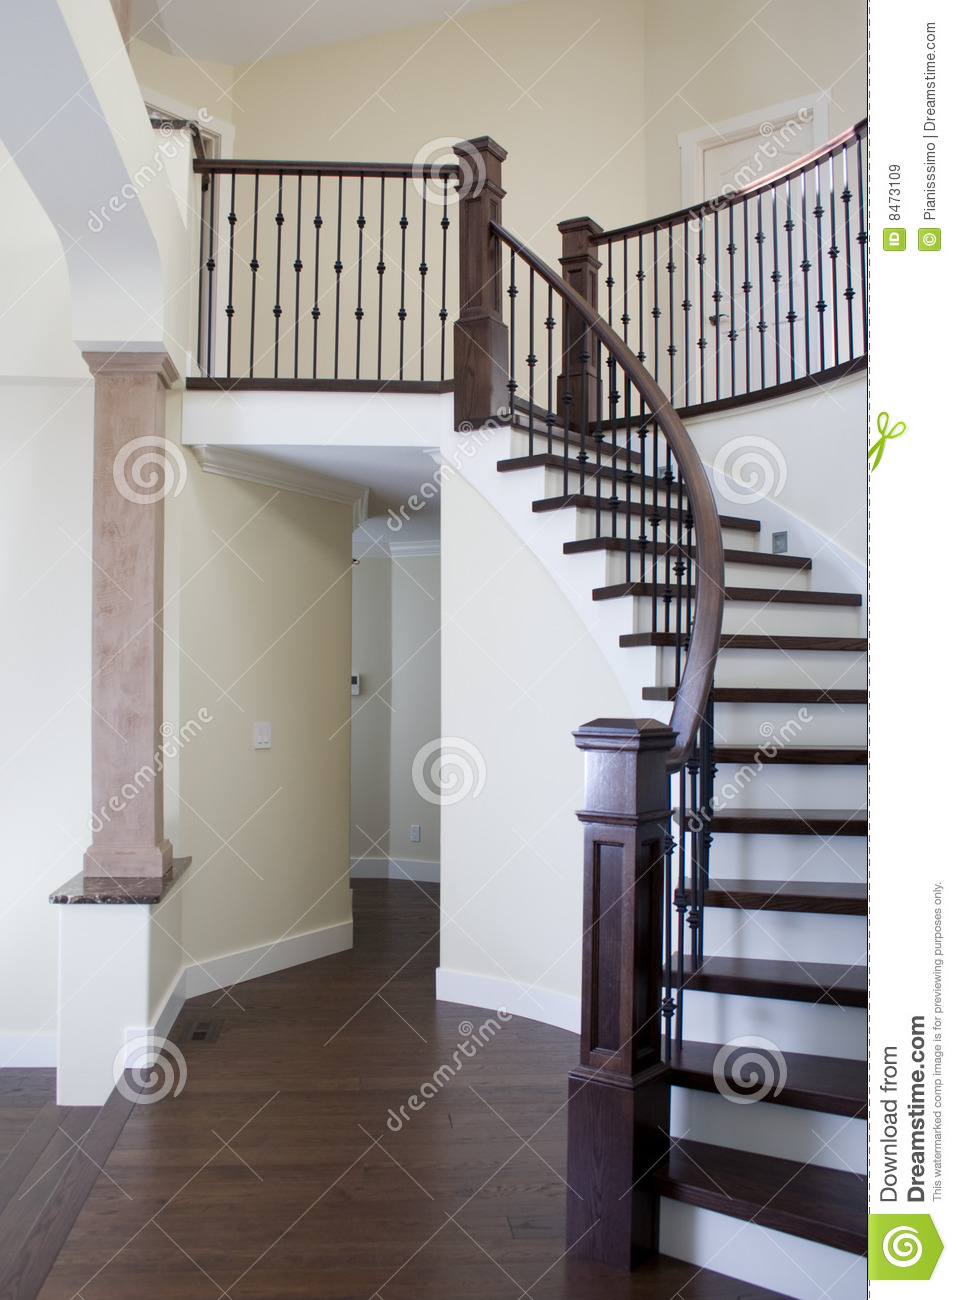 Interior stairs royalty free stock images image 8473109